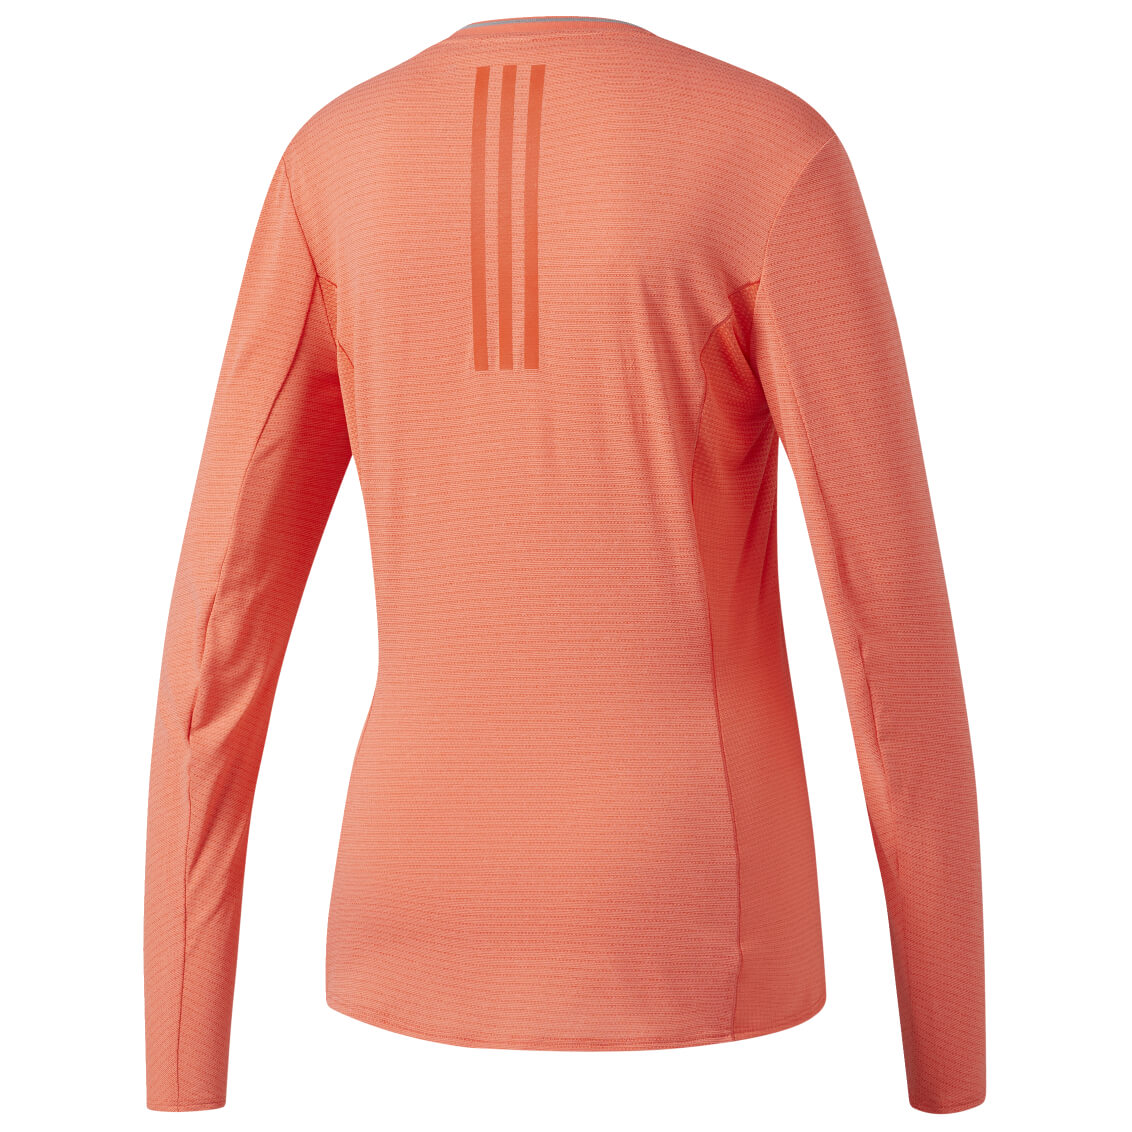 5aefcab9 Adidas Supernova Long Sleeve Tee - Running Shirt Women's | Buy ...